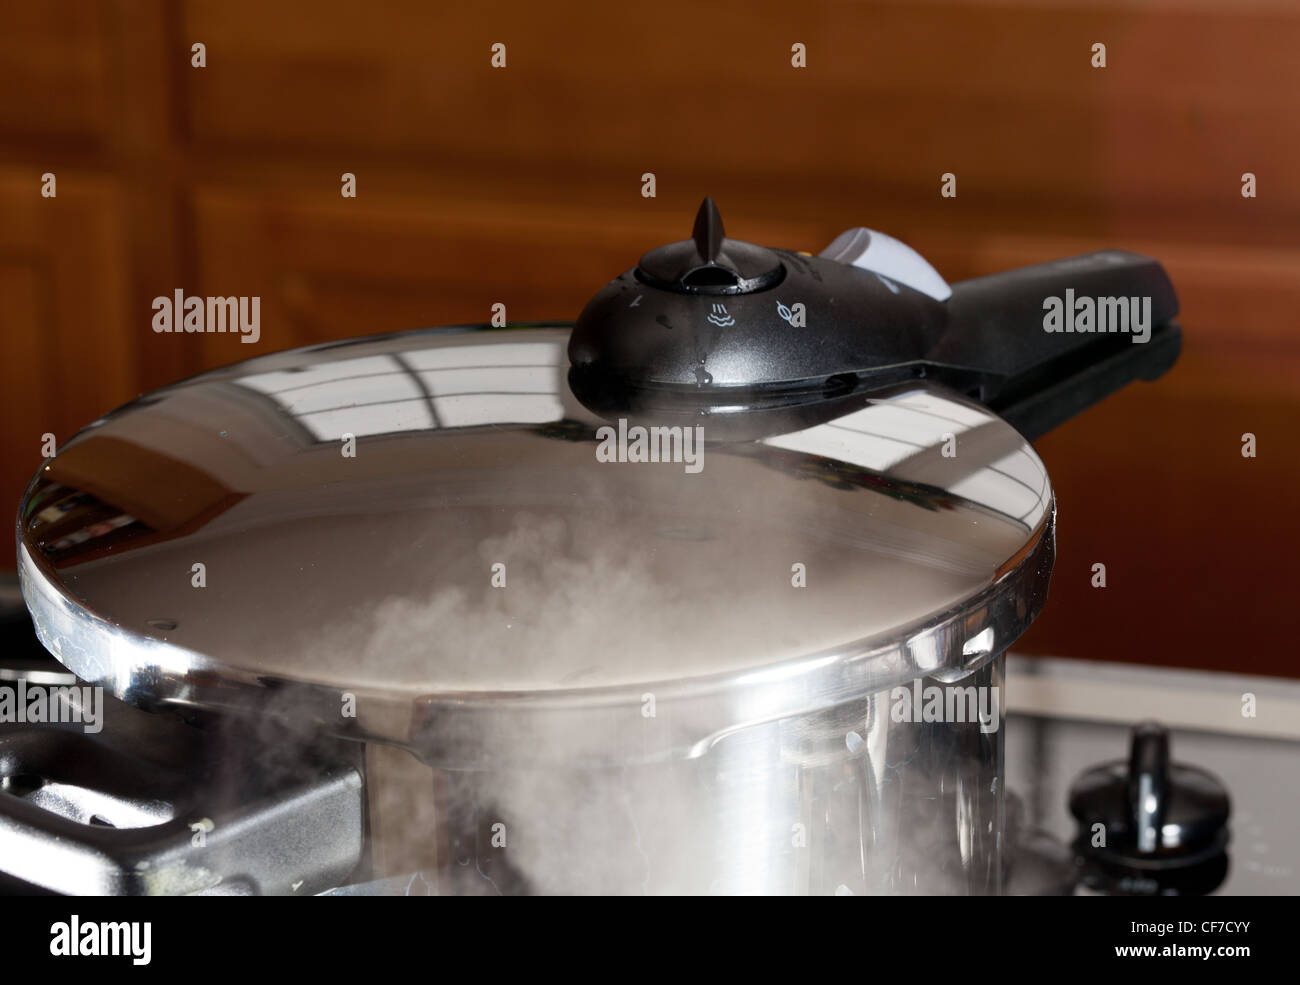 Pressure cooker releasing steam pressure on hob in modern kitchen - Stock Image